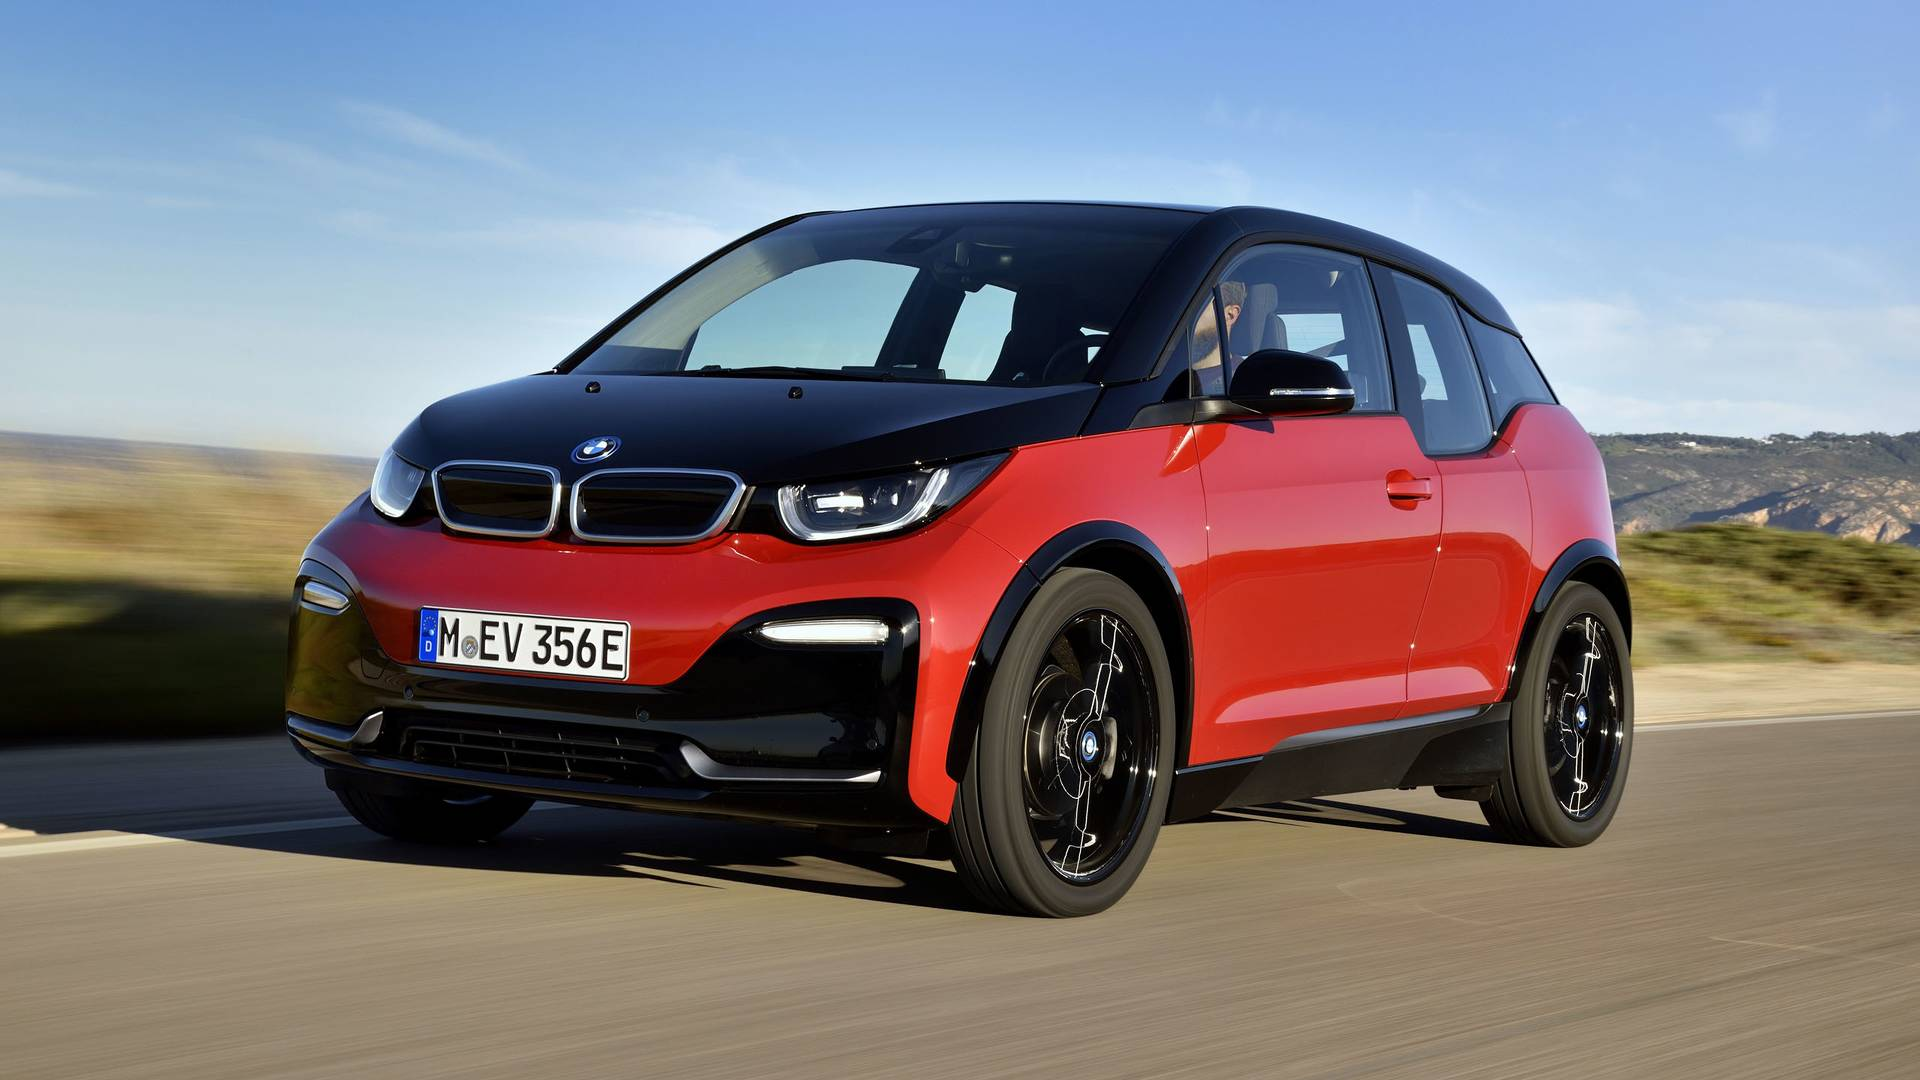 Bmw Says Mass Producing Electric Cars Isn T Yet Viable